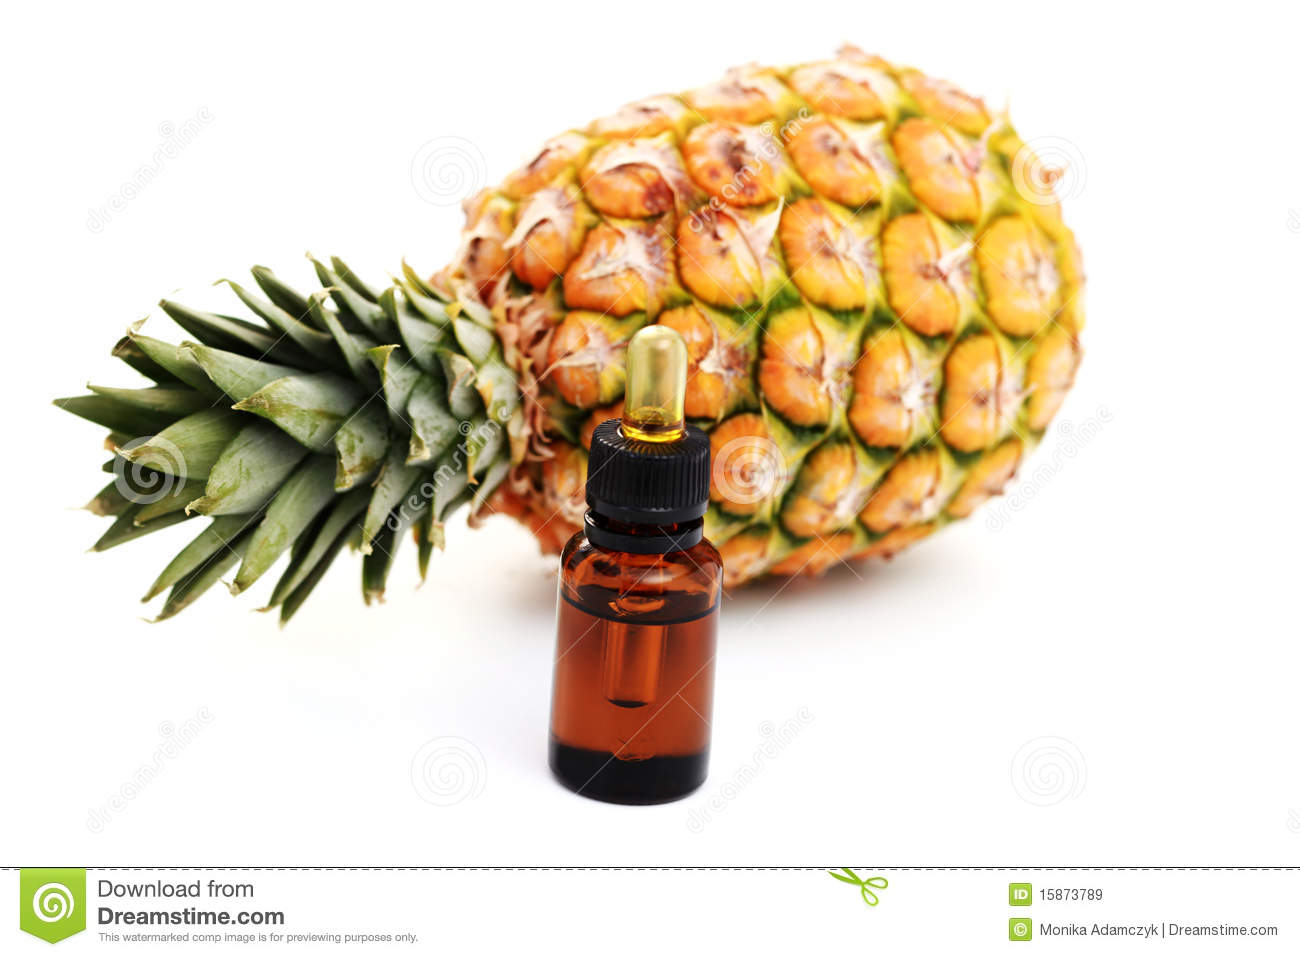 how to make pineapple essential oil